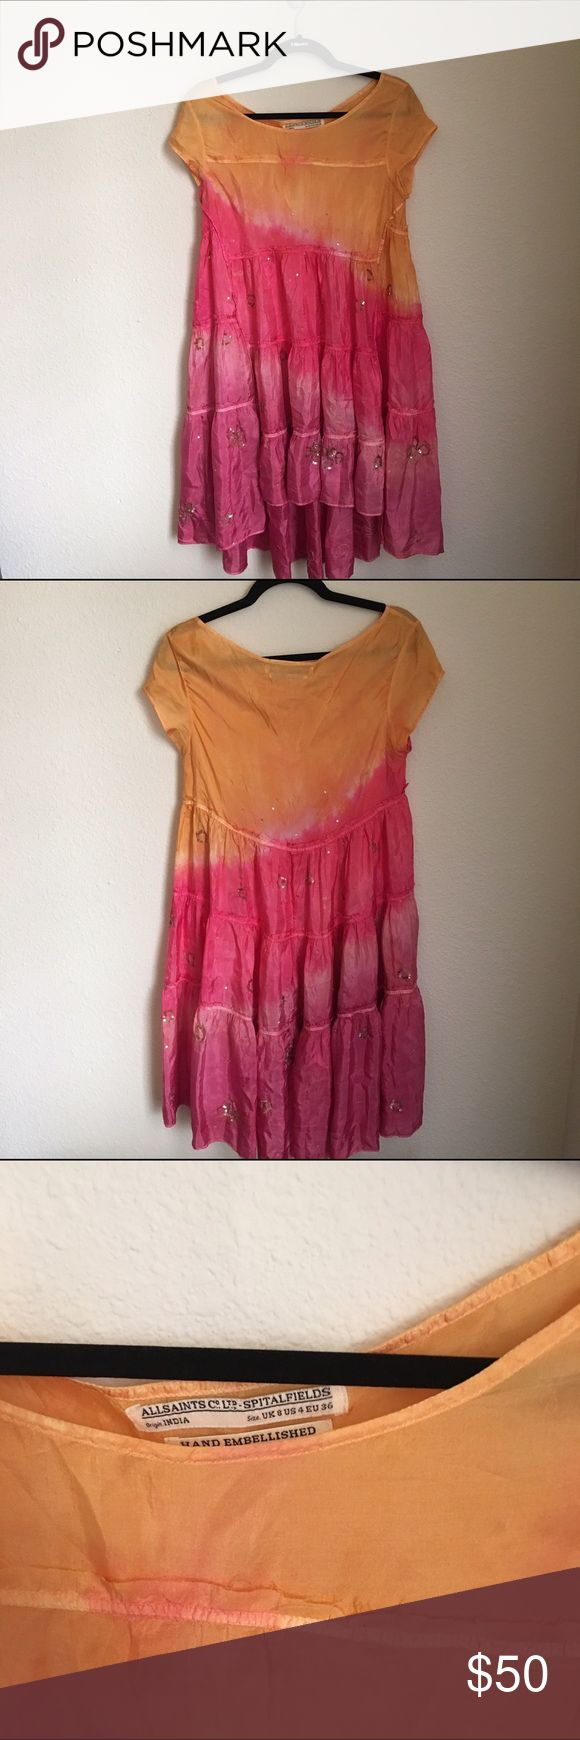 AllSaints Dress sz 4 Dip dye embellished AllSaints dress US size 4. In great condition! All Saints Dresses